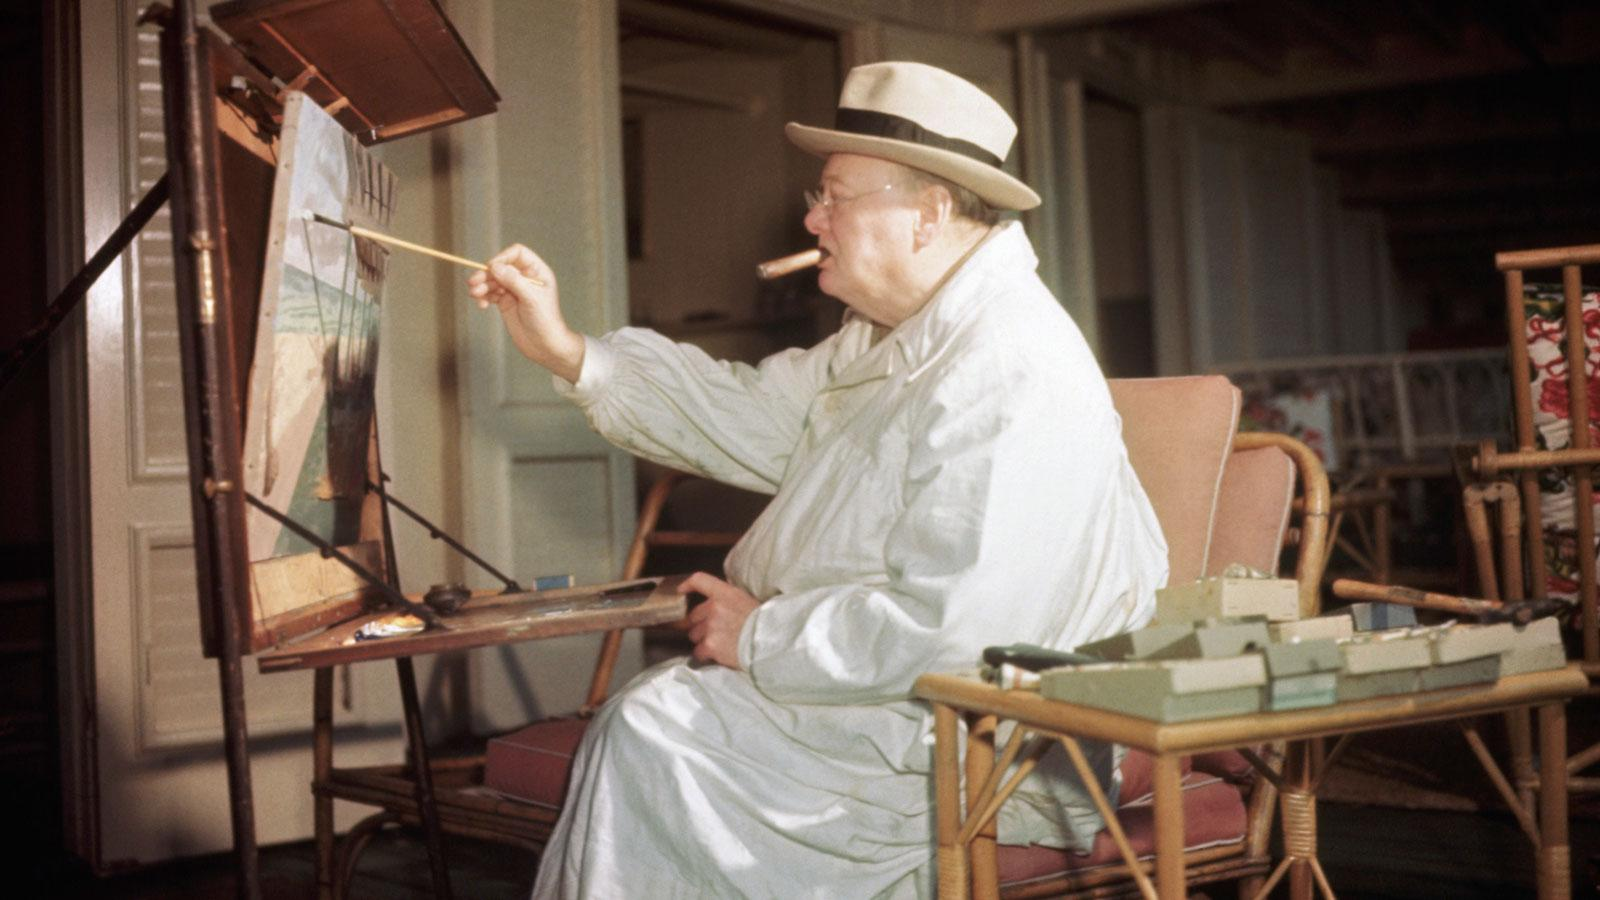 Sir Winston Churchill relaxes while smoking and painting in his art studio.